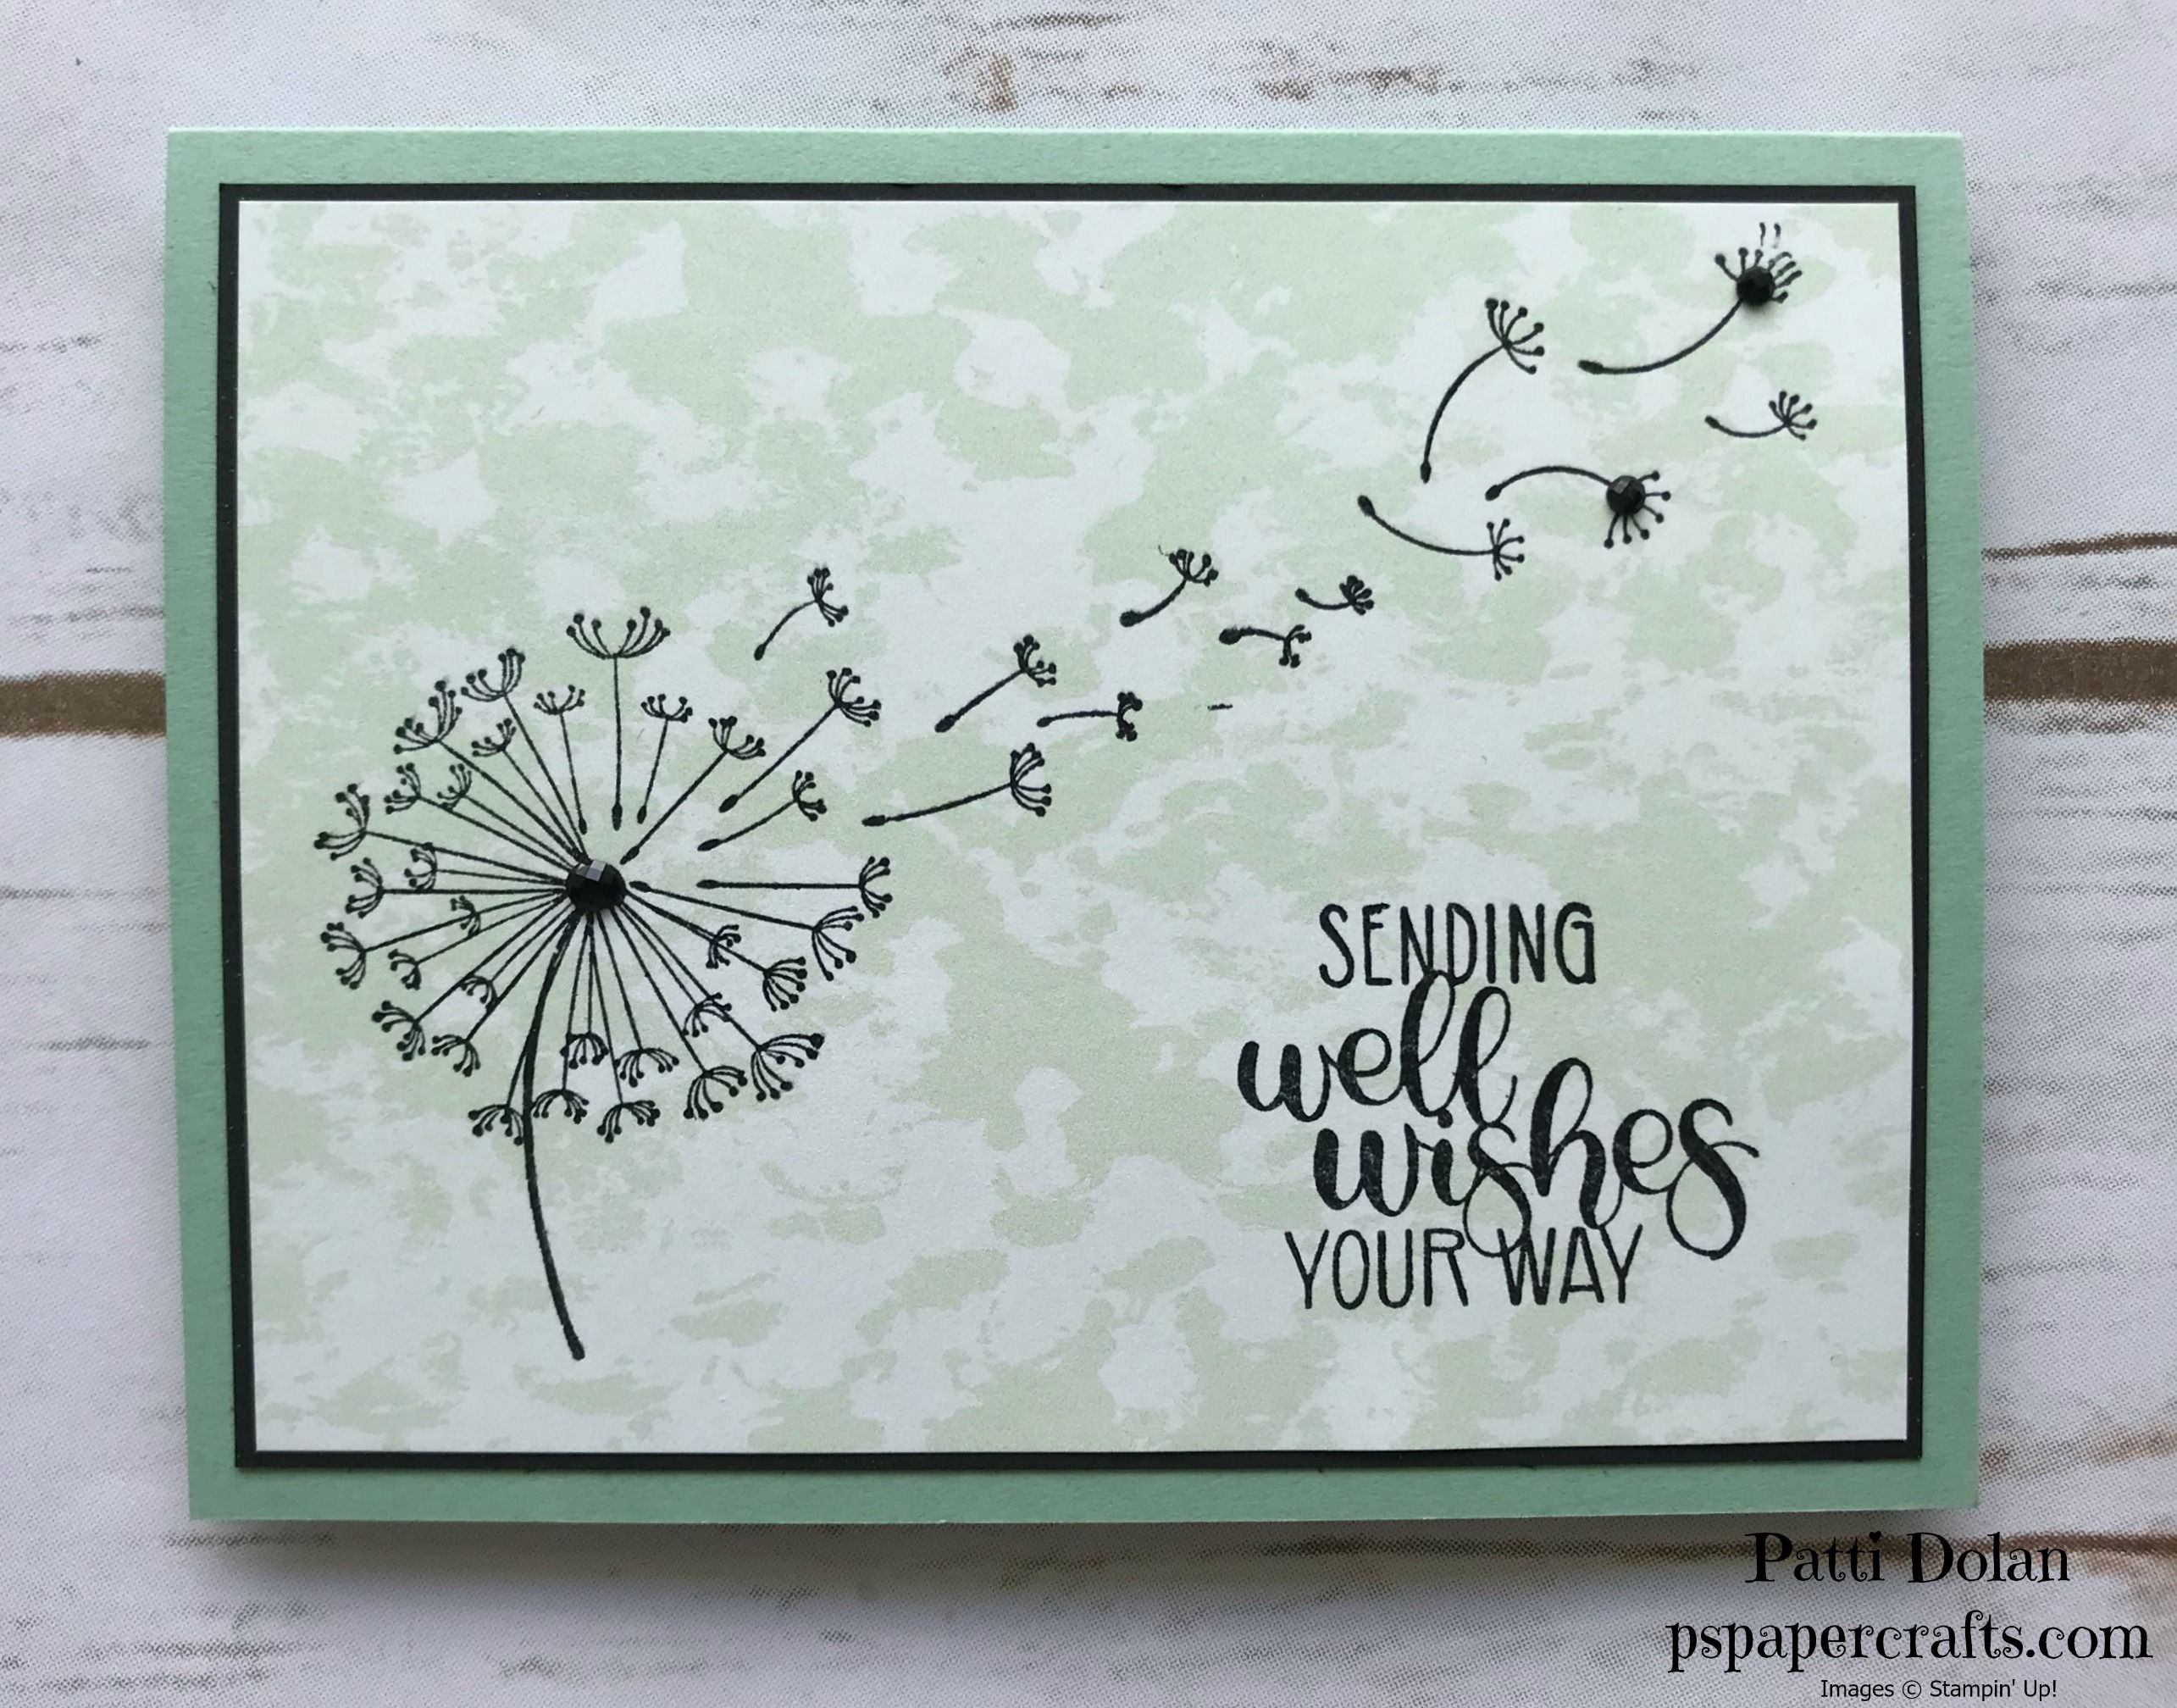 Diy Handmade Sending Well Wishes Your Way Card Featuring The Dandelion Wishes Stamp Set From Stampin Up Dandelion Wish Cards Inspirational Cards